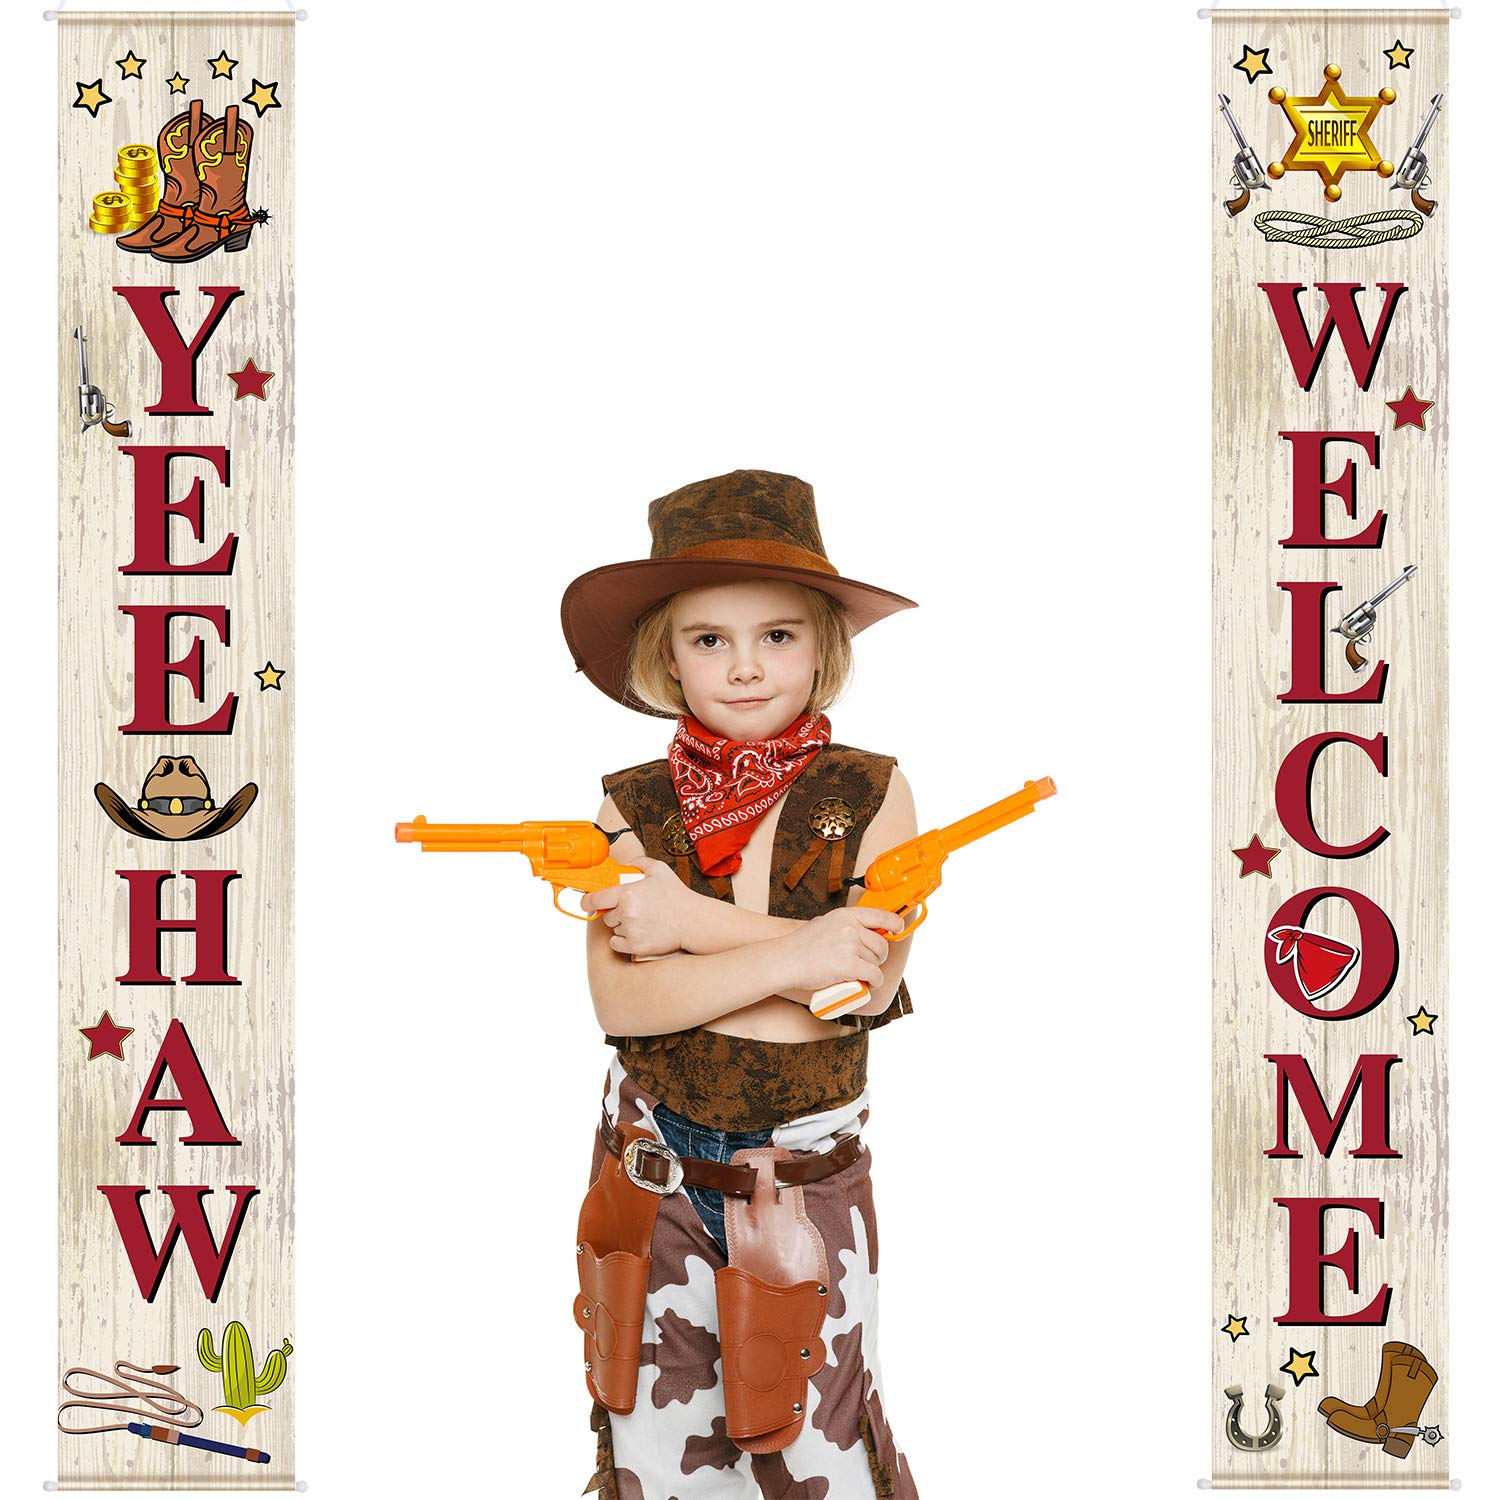 West Cowboy Yee Haw Garland Party Decoration Set Cowboy Porch Sign Welcome Cowboy Banner Hanging Decoration for Indoor/Outdoor Western Cowboy Decoration Party Decorations